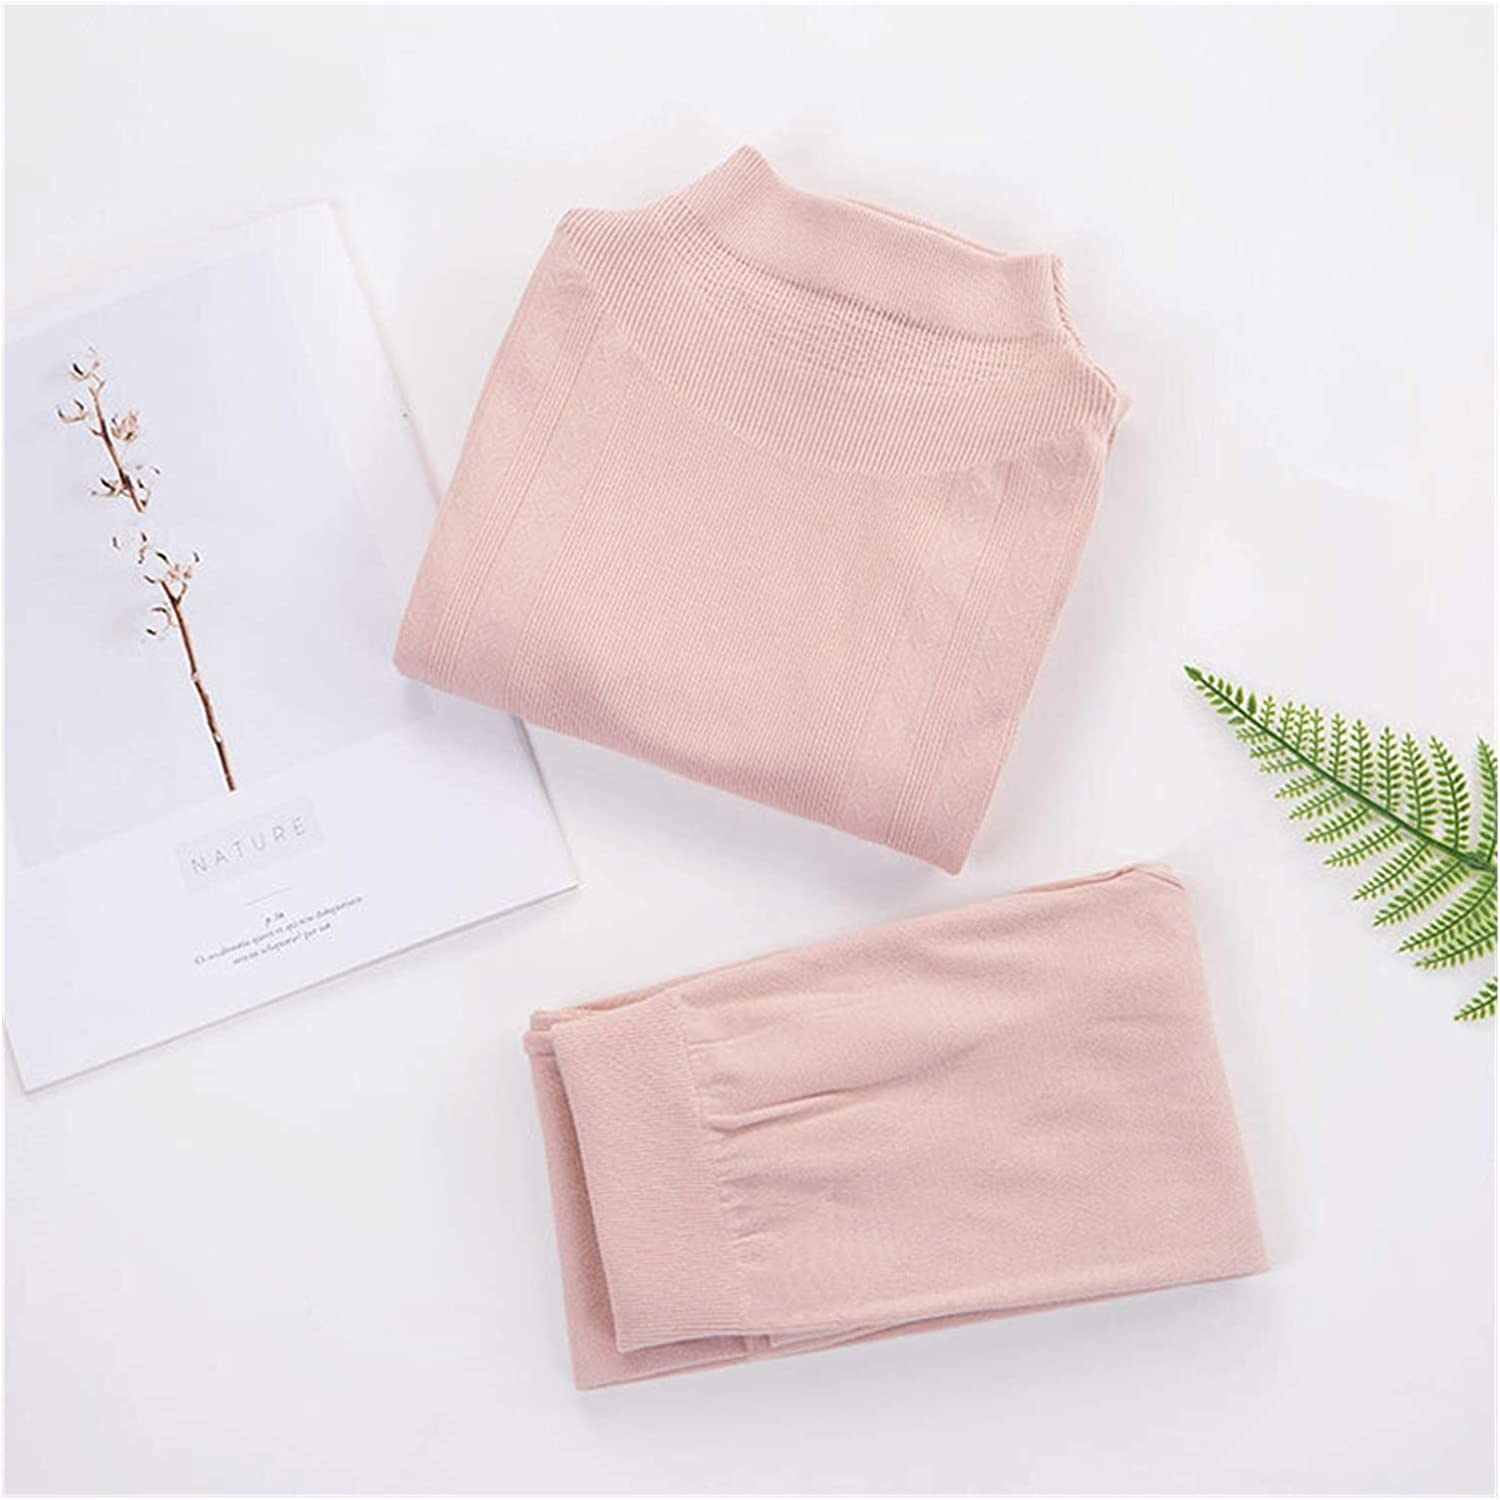 LCM Solid Color Slim Women's Thermal Underwear Set Winter Turtleneck Cotton Female Second Skin Thermo Clothing Pajamas (Color : Beige, Size : One Size)